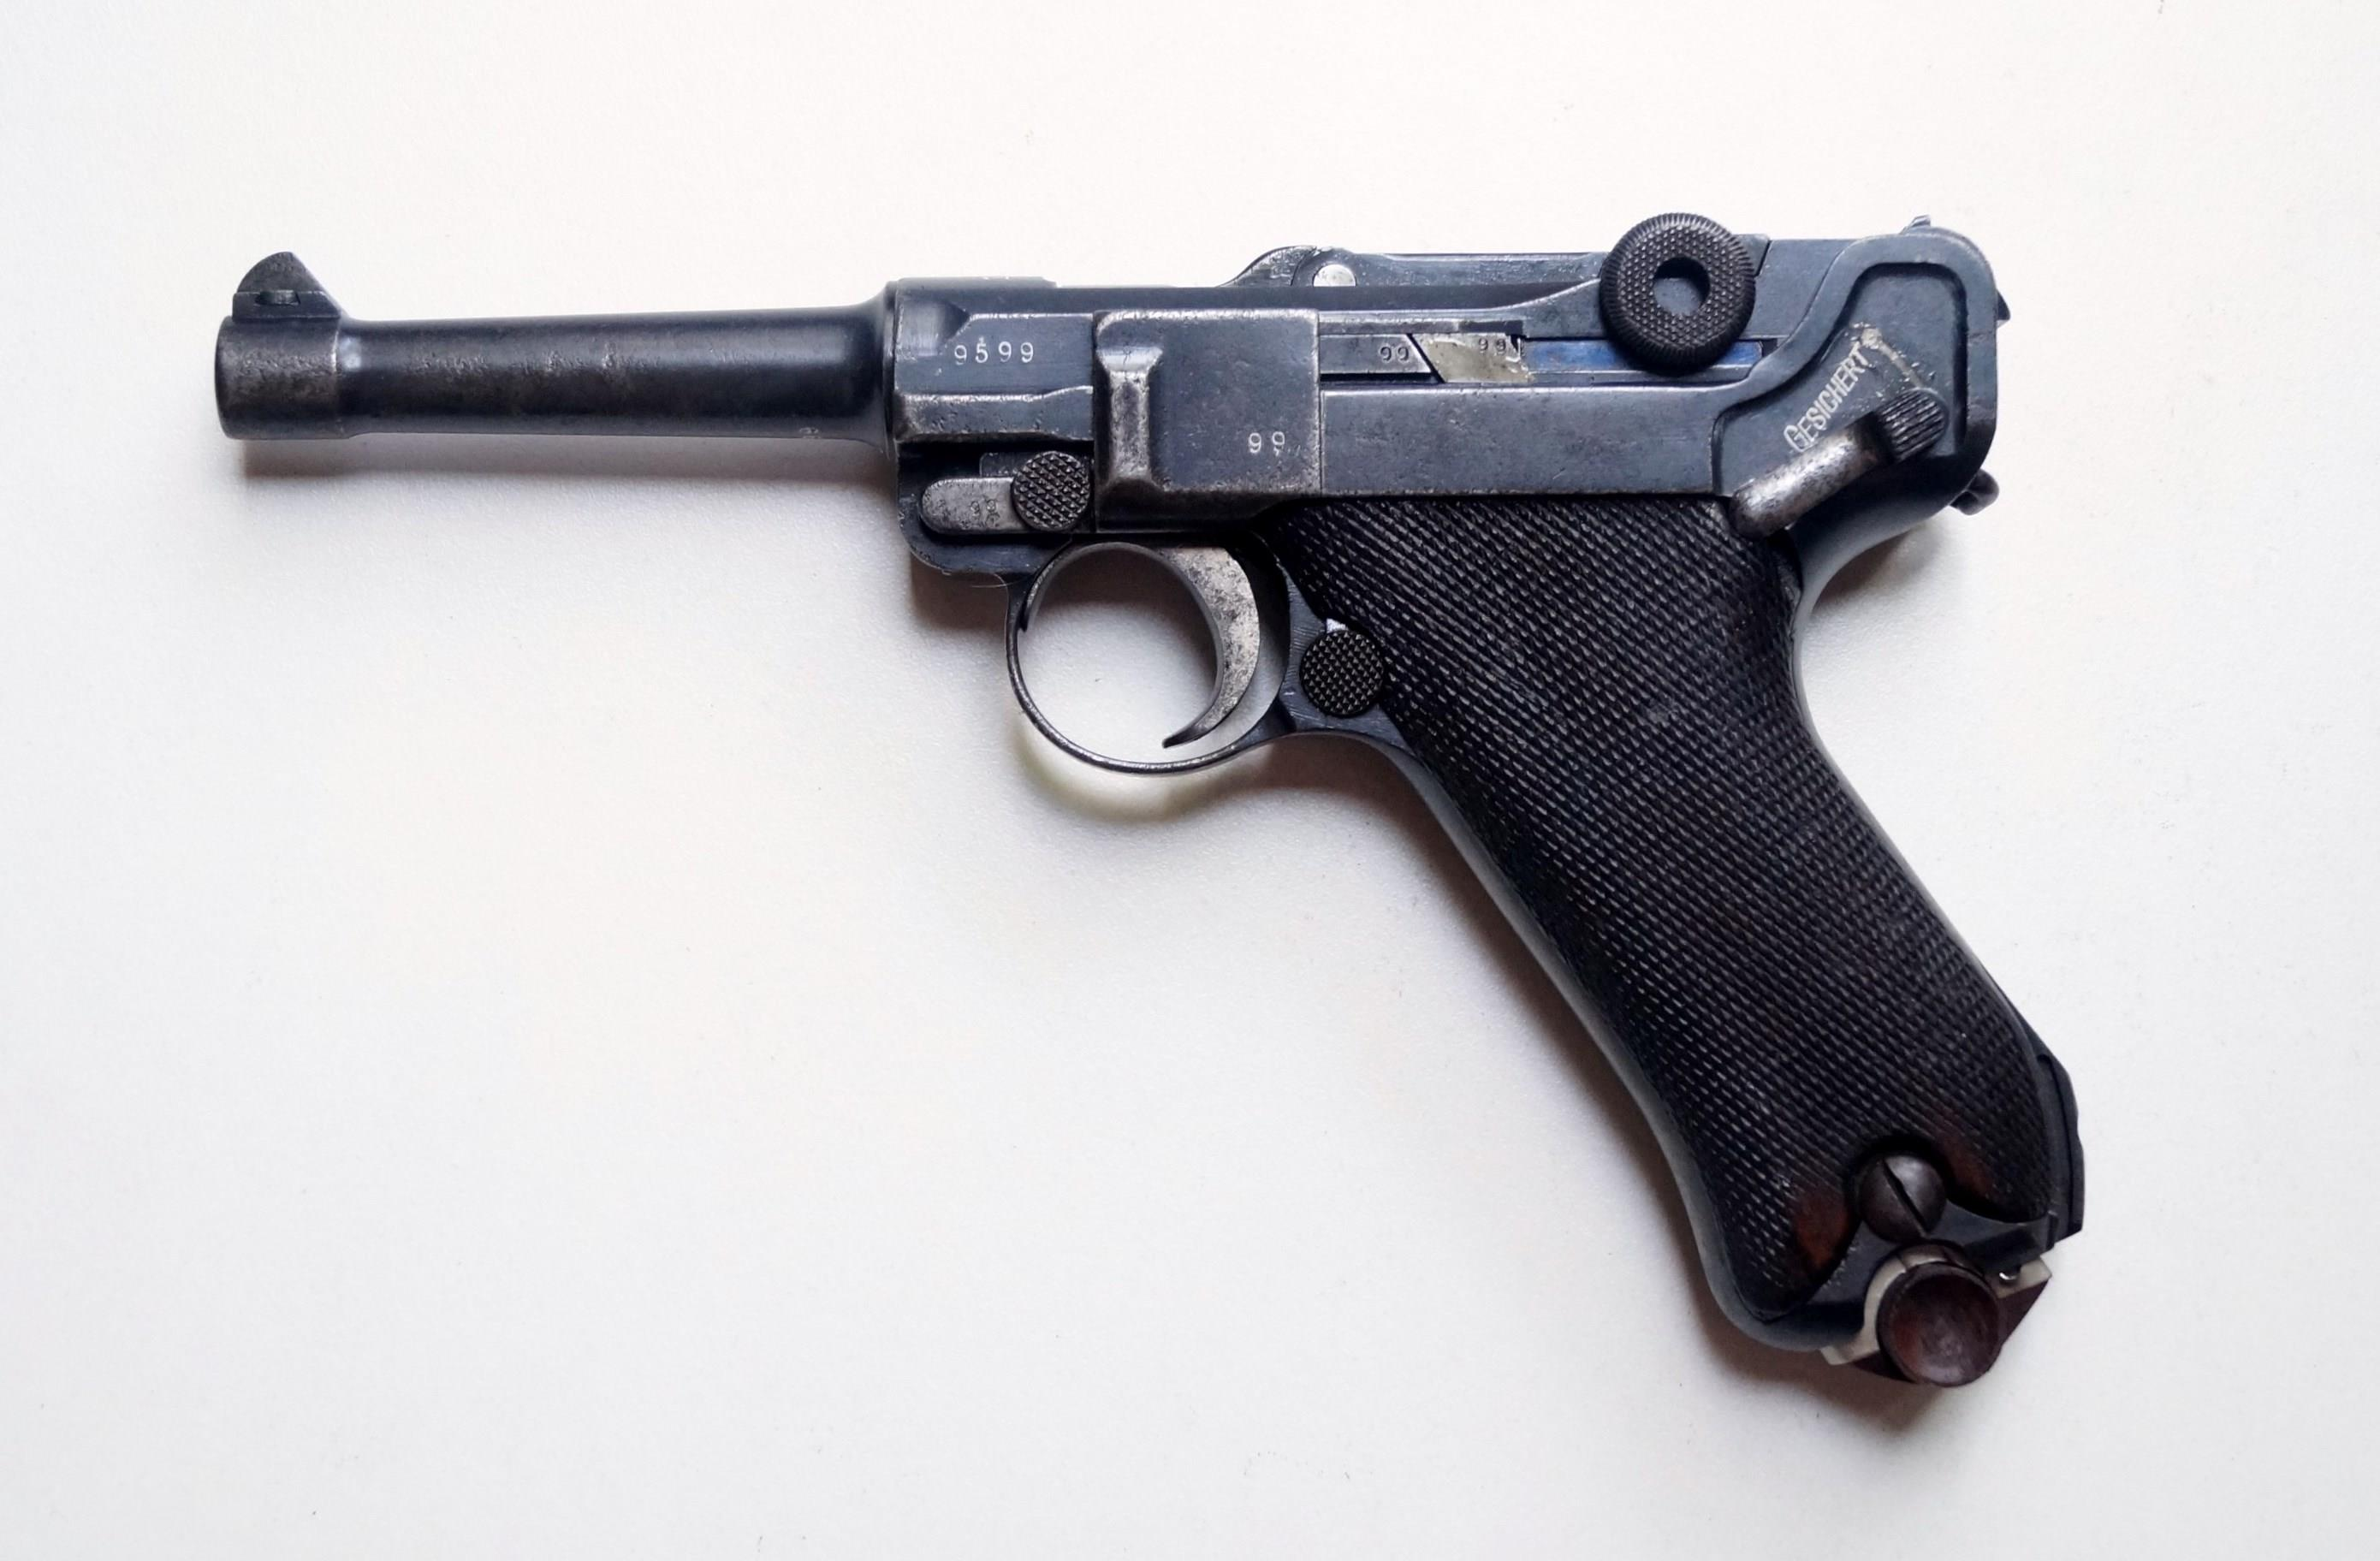 1914 DWM MILITARY GERMAN LUGER  Guns > Pistols > Luger Pistols